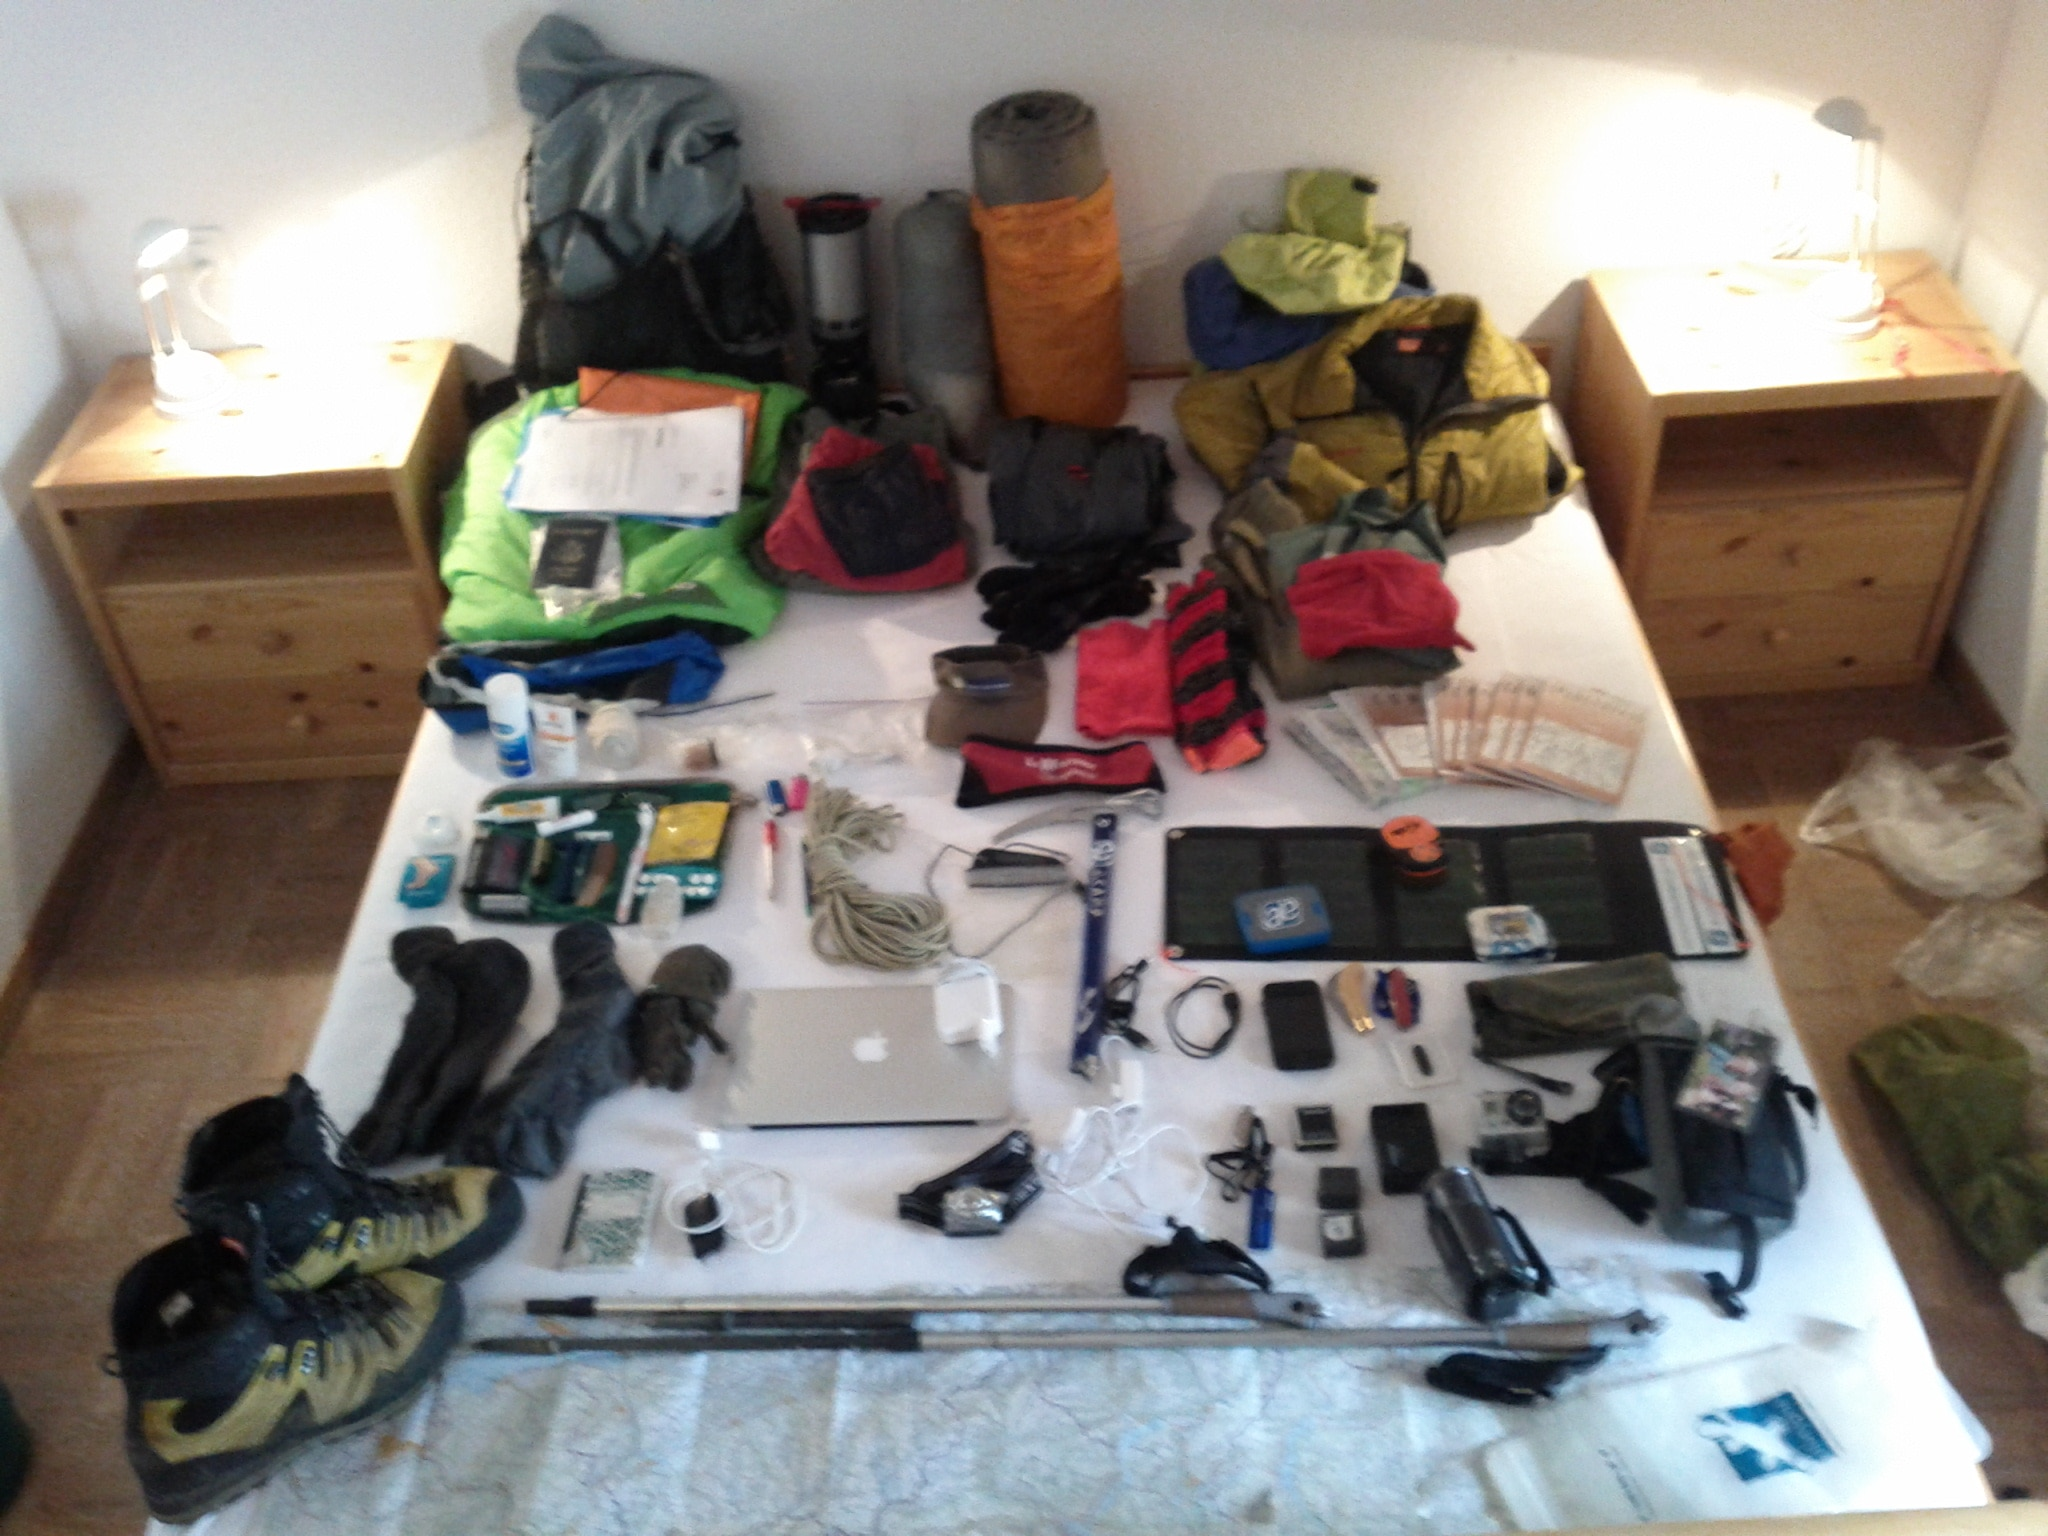 After the purge. Today I stripped out all of my climbing gear except 15 meters of rope and an aluminum ice axe. The rest I've mailed on. Here is everything I'm carrying and wearing, right down to my underwear. Plus food for several days. And water. And the phone-came​ra I'm taking this picture with.